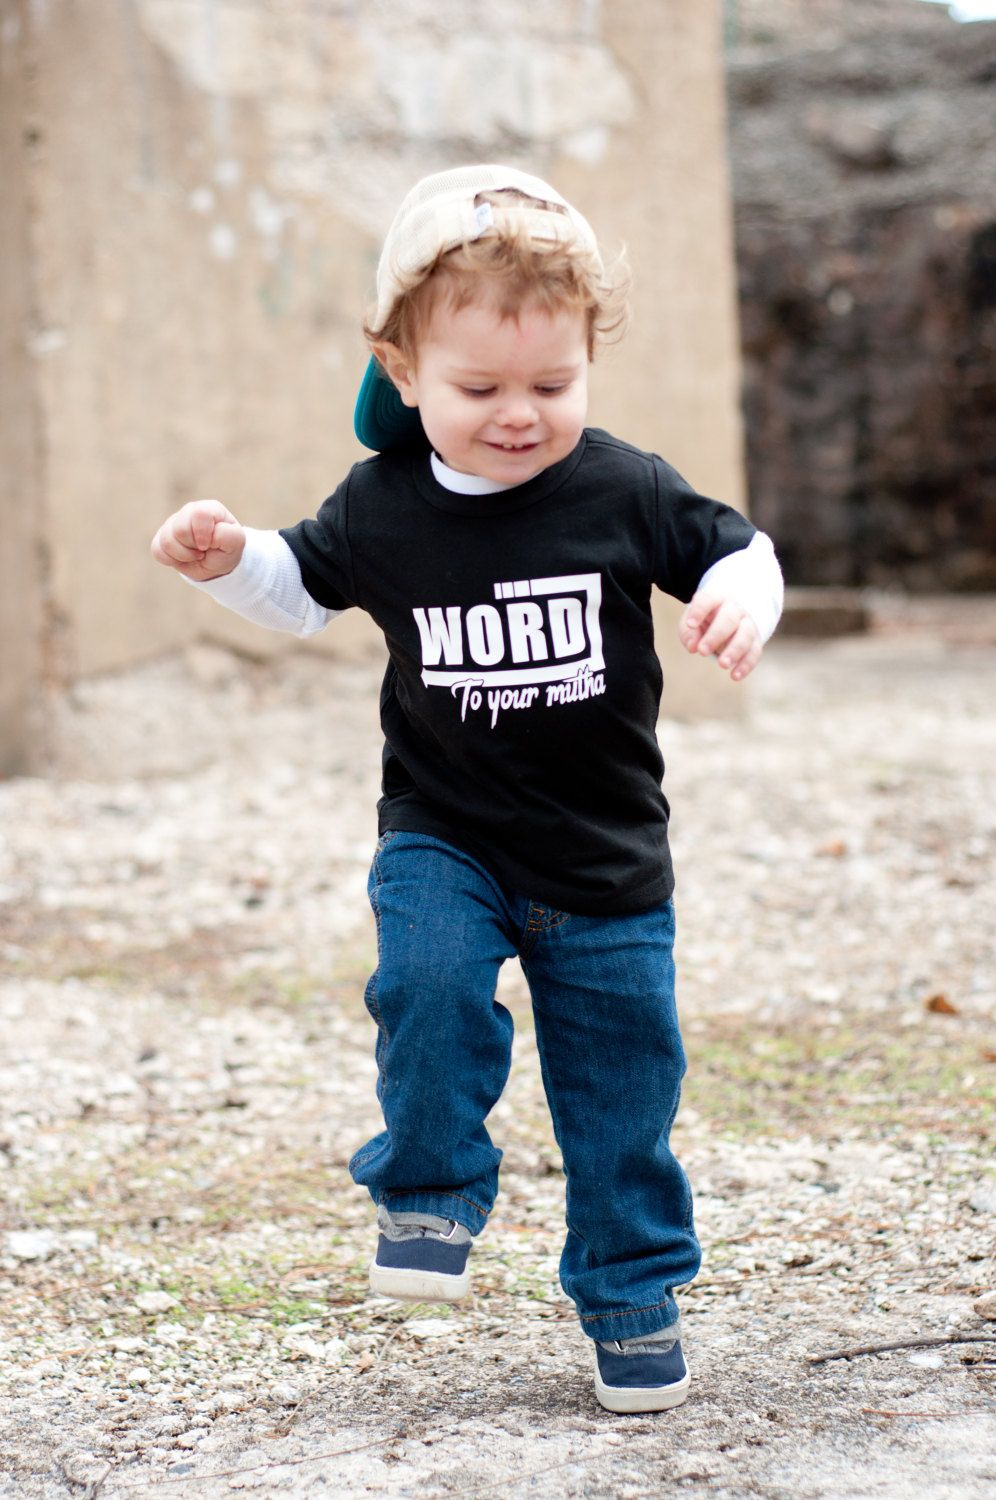 963c3cb38 Hipster Kids Clothes - Hipster T Shirt - Boys Graphic Tee - Trendy Kids  Clothes - Monochrome Kids - Hipster Toddler - Word To Your Mutha by ...